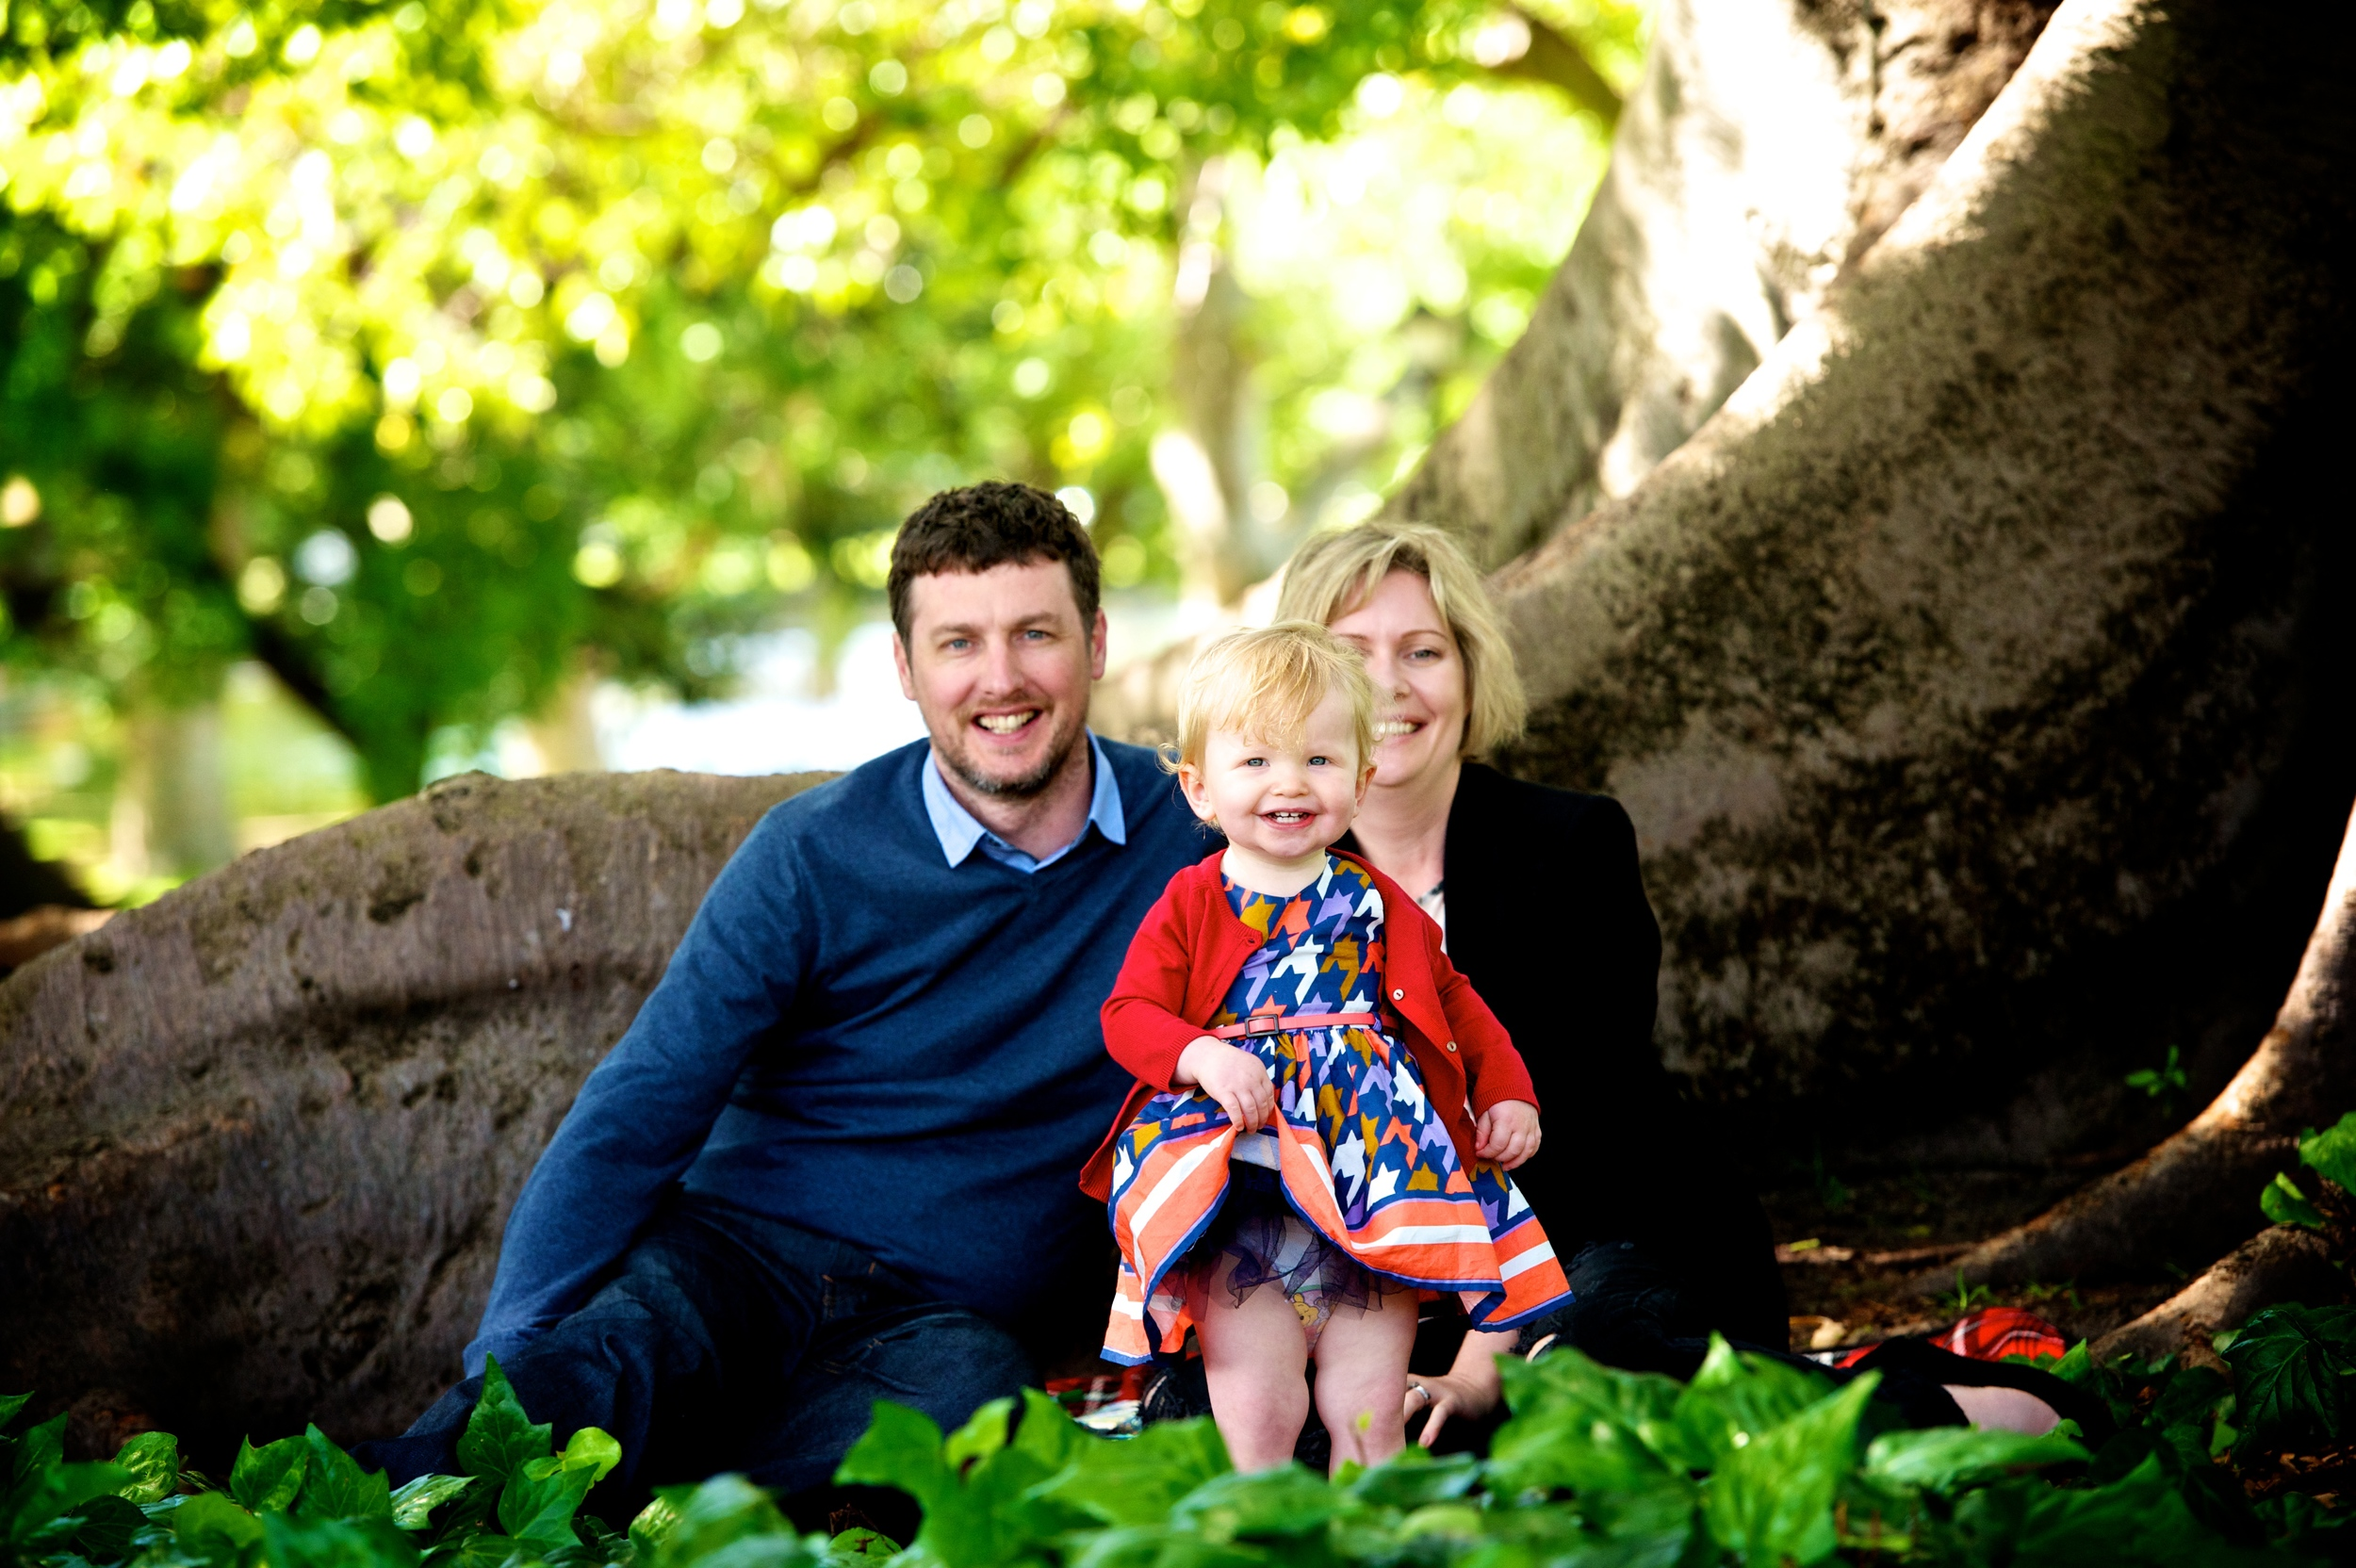 Hyde park is an amazing backdrop for family photography